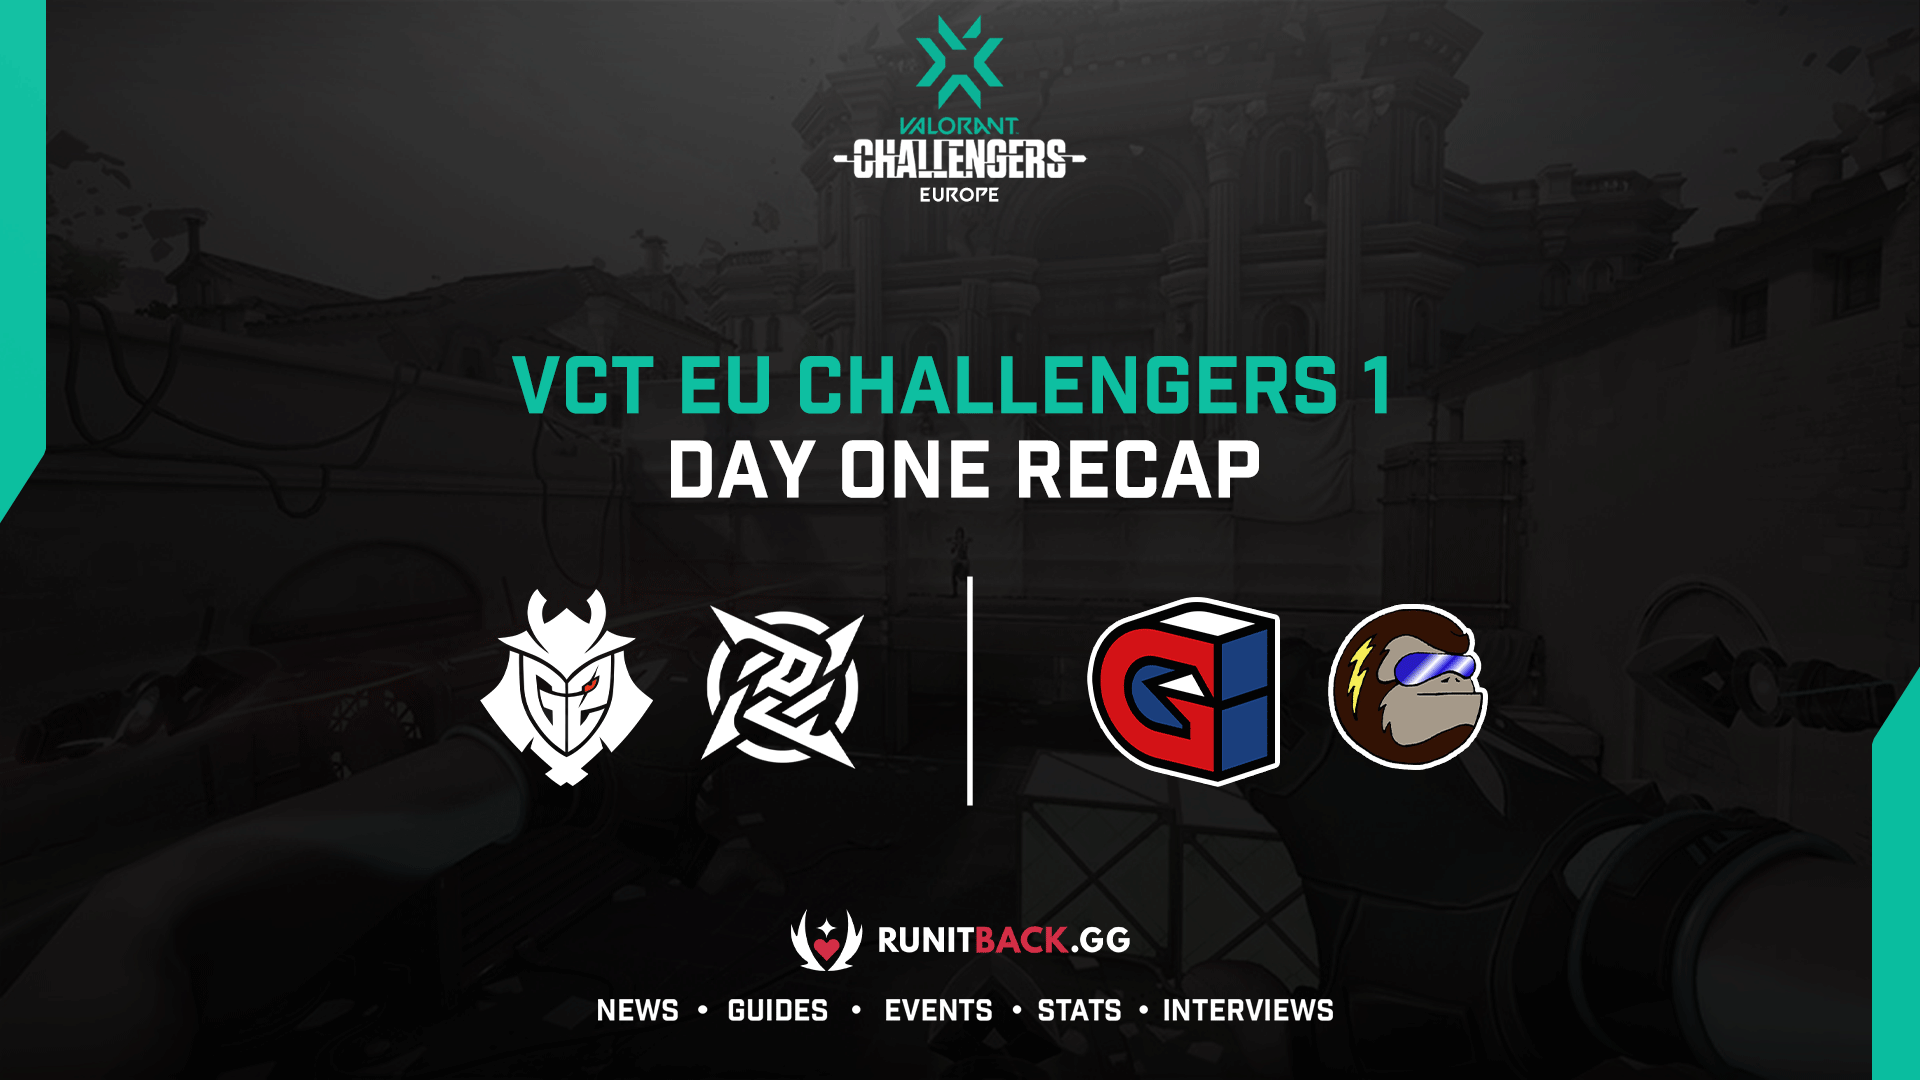 VCT Europe Challengers 1: Day One Recap